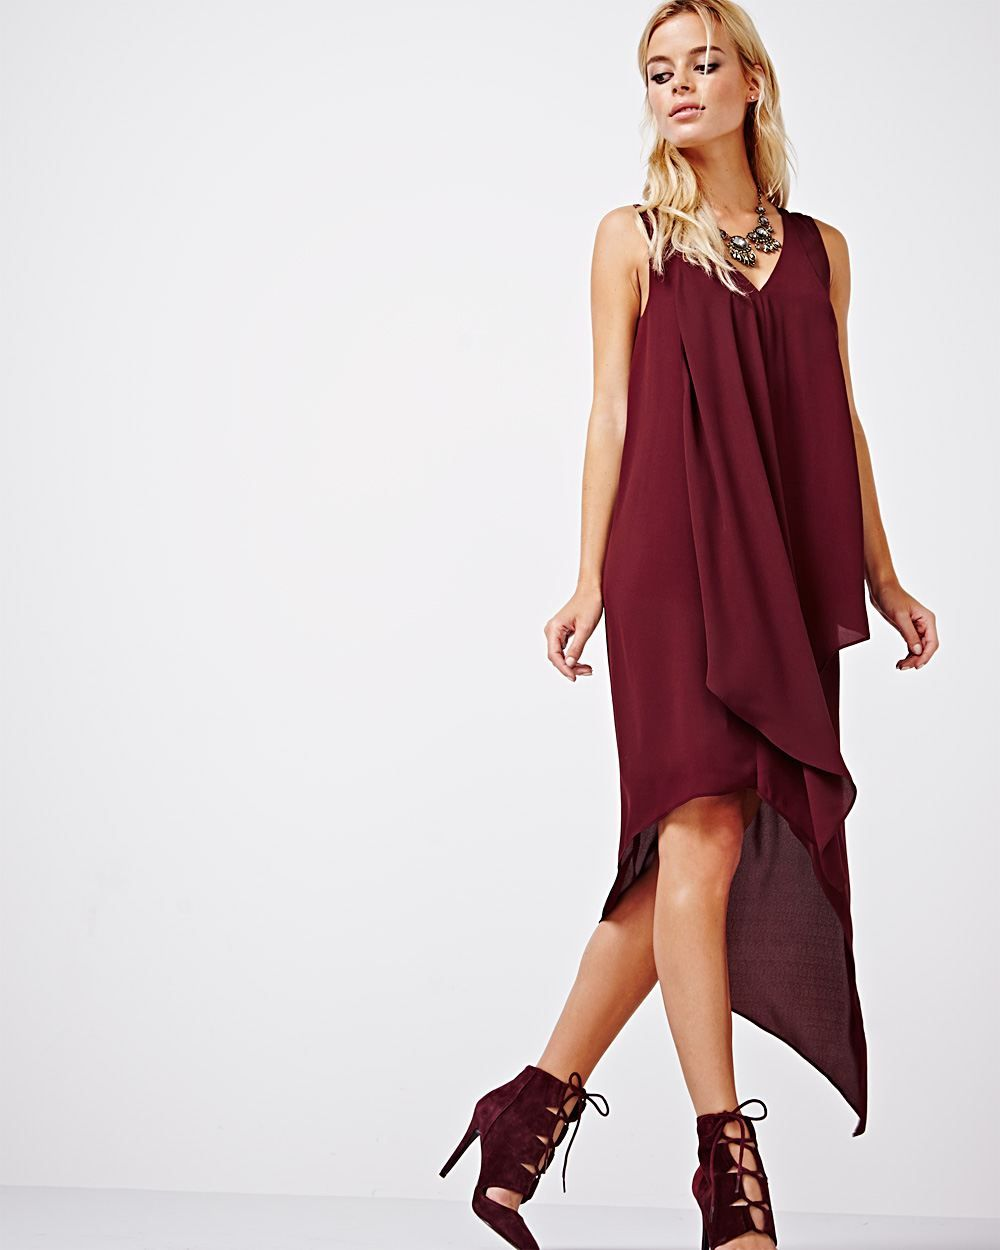 79b4dd114d This silky high-low maxi dress will have you looking polished morning to  night. Wear with a pair of strappy sandals for a sexy summer look.